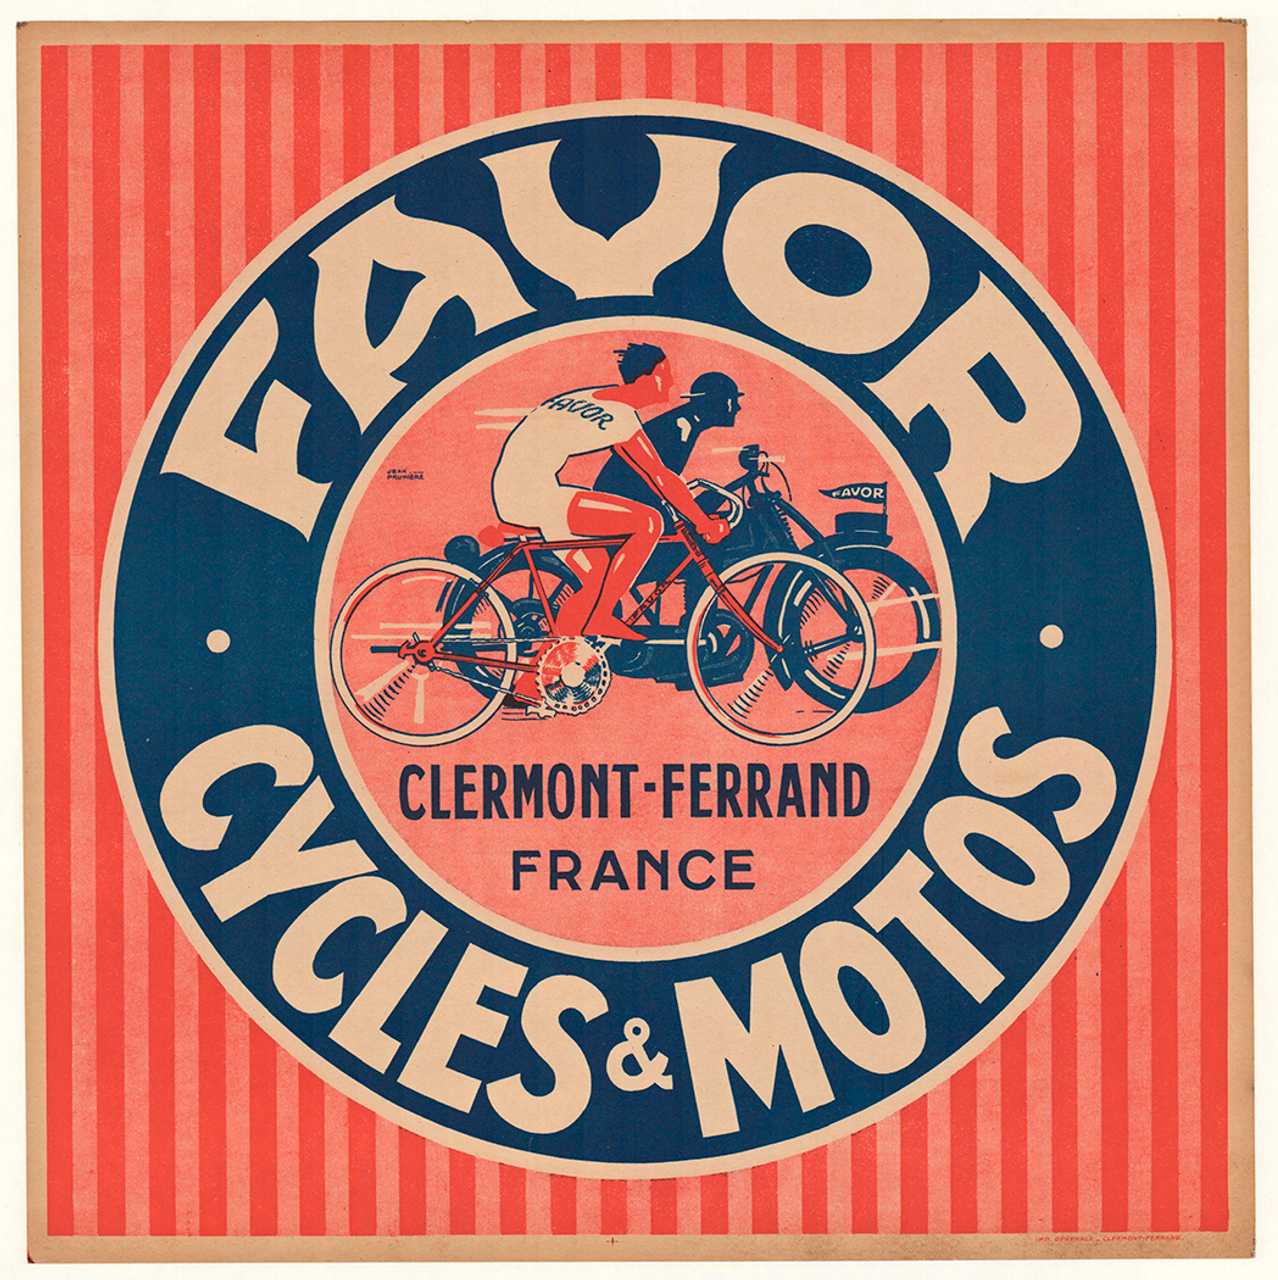 Favor Cycles & Motos Original Vintage Bicycle Poster by Jean Pruniere